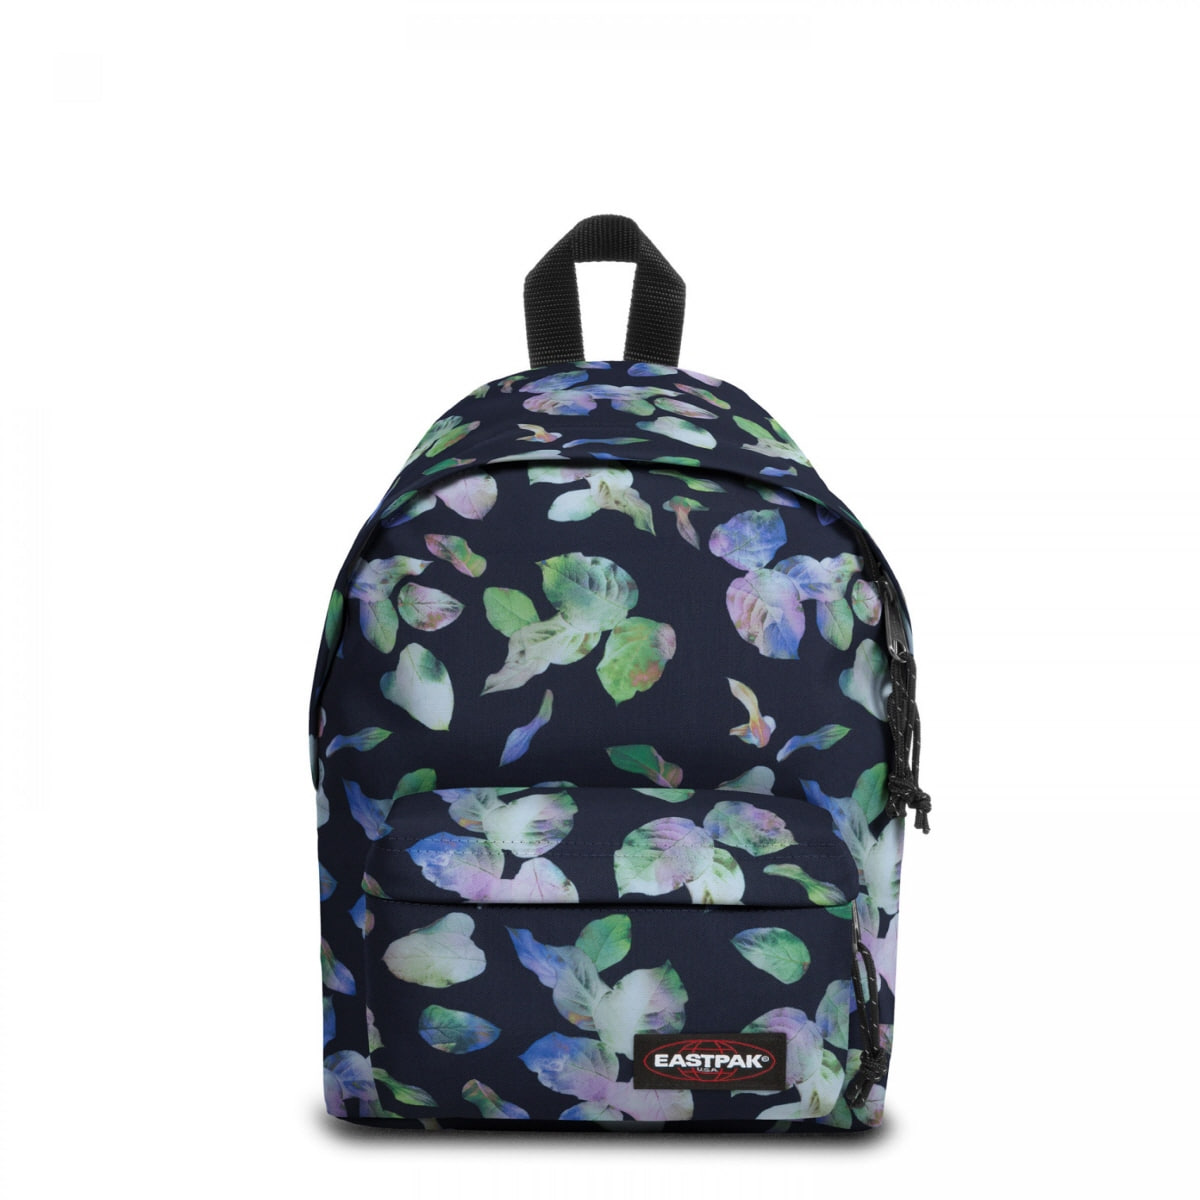 [EASTPAK] AUTHENTIC 백팩 올빗 EJCBA01 78Y